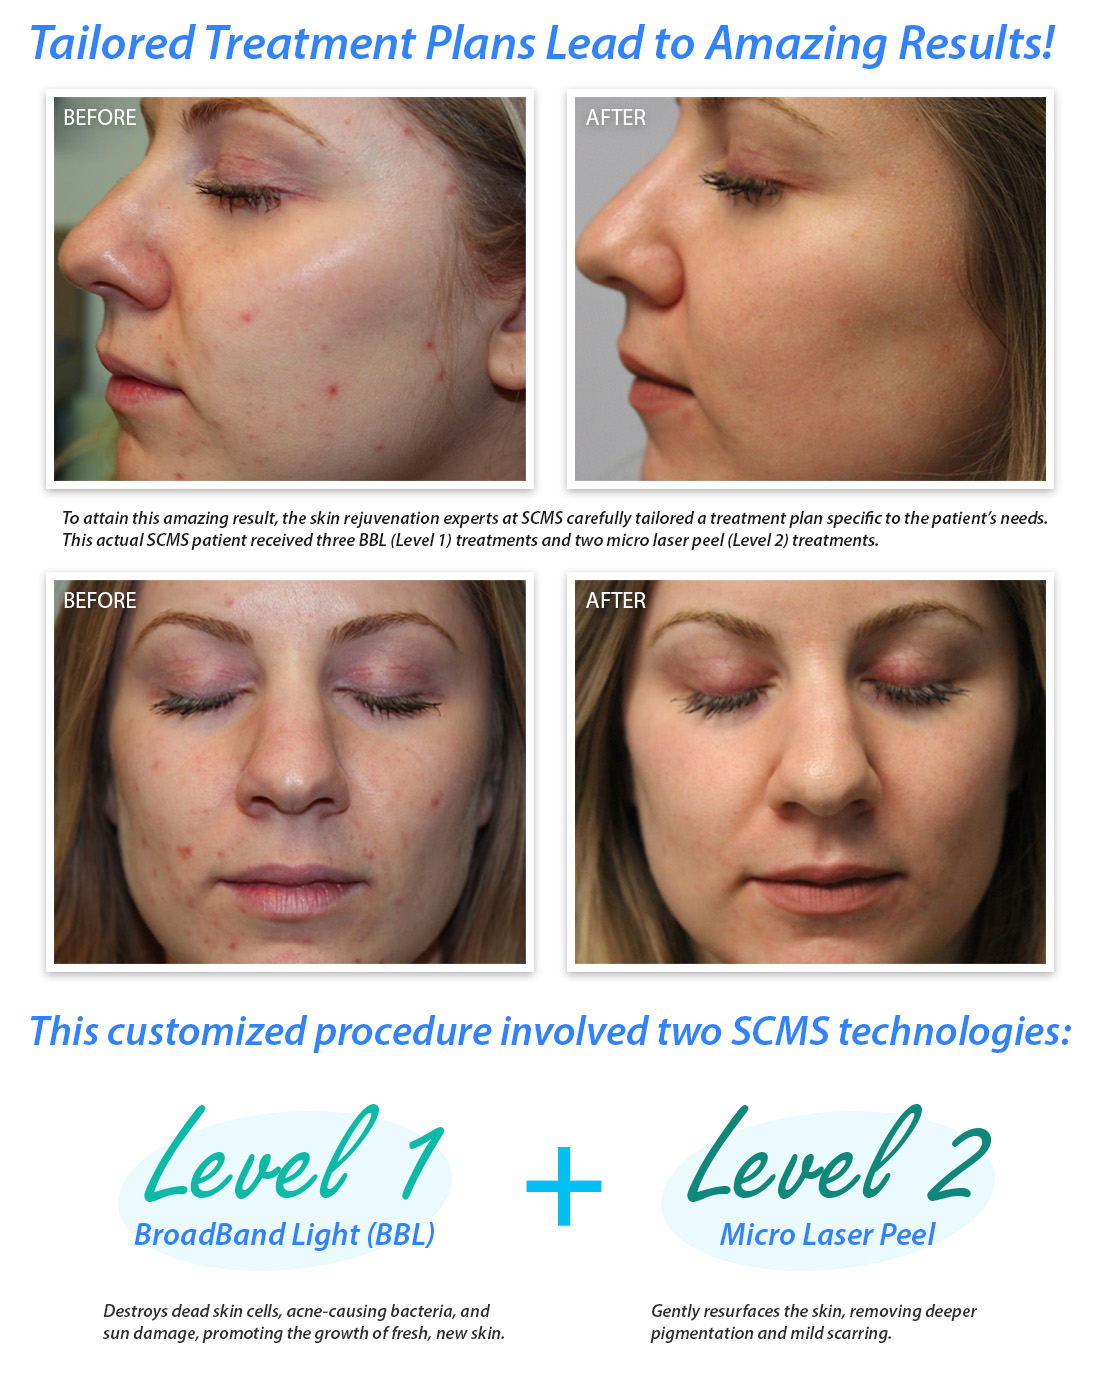 Before and After BBL Microlaserpeel